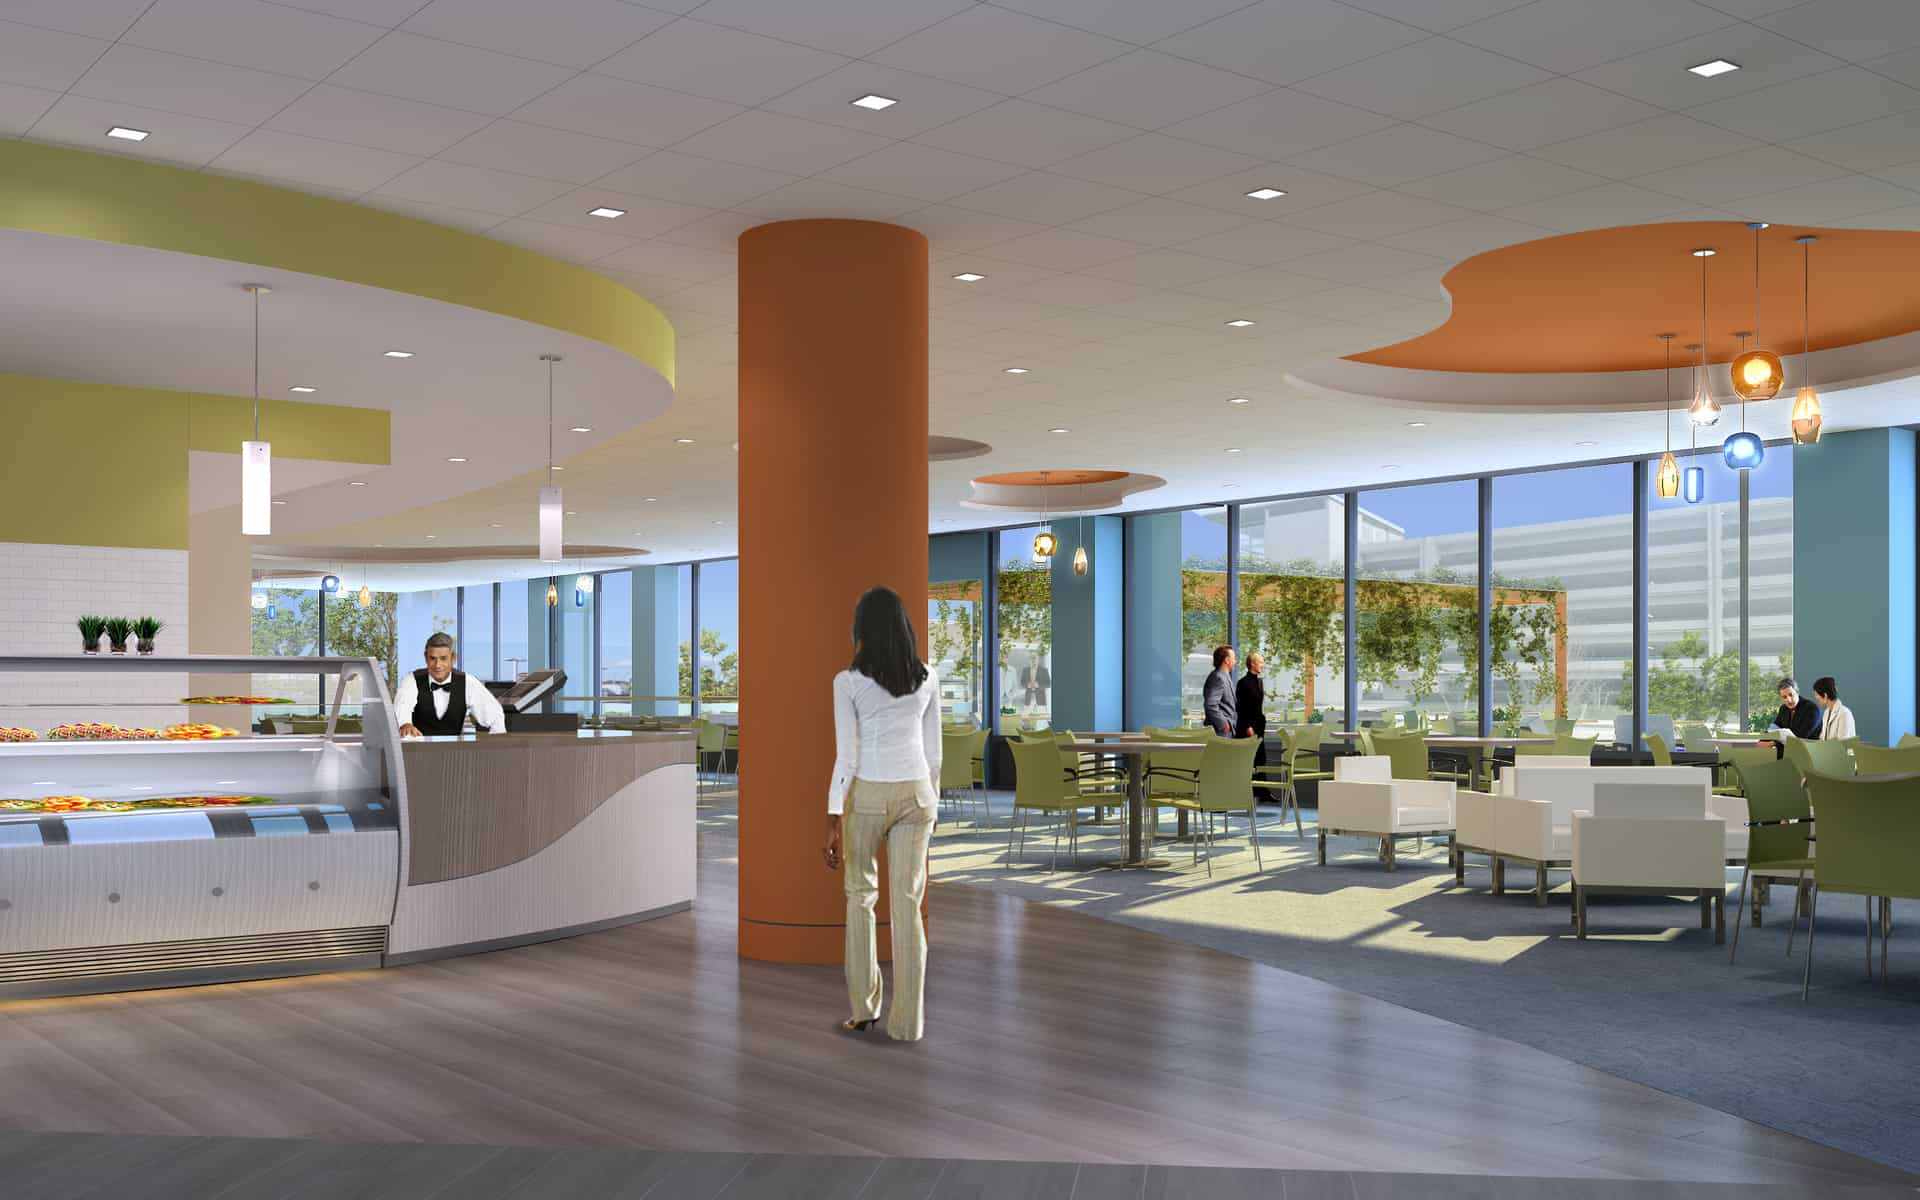 Heritage Landing Cafe- Rendering by Margulies Perruzzi Architects